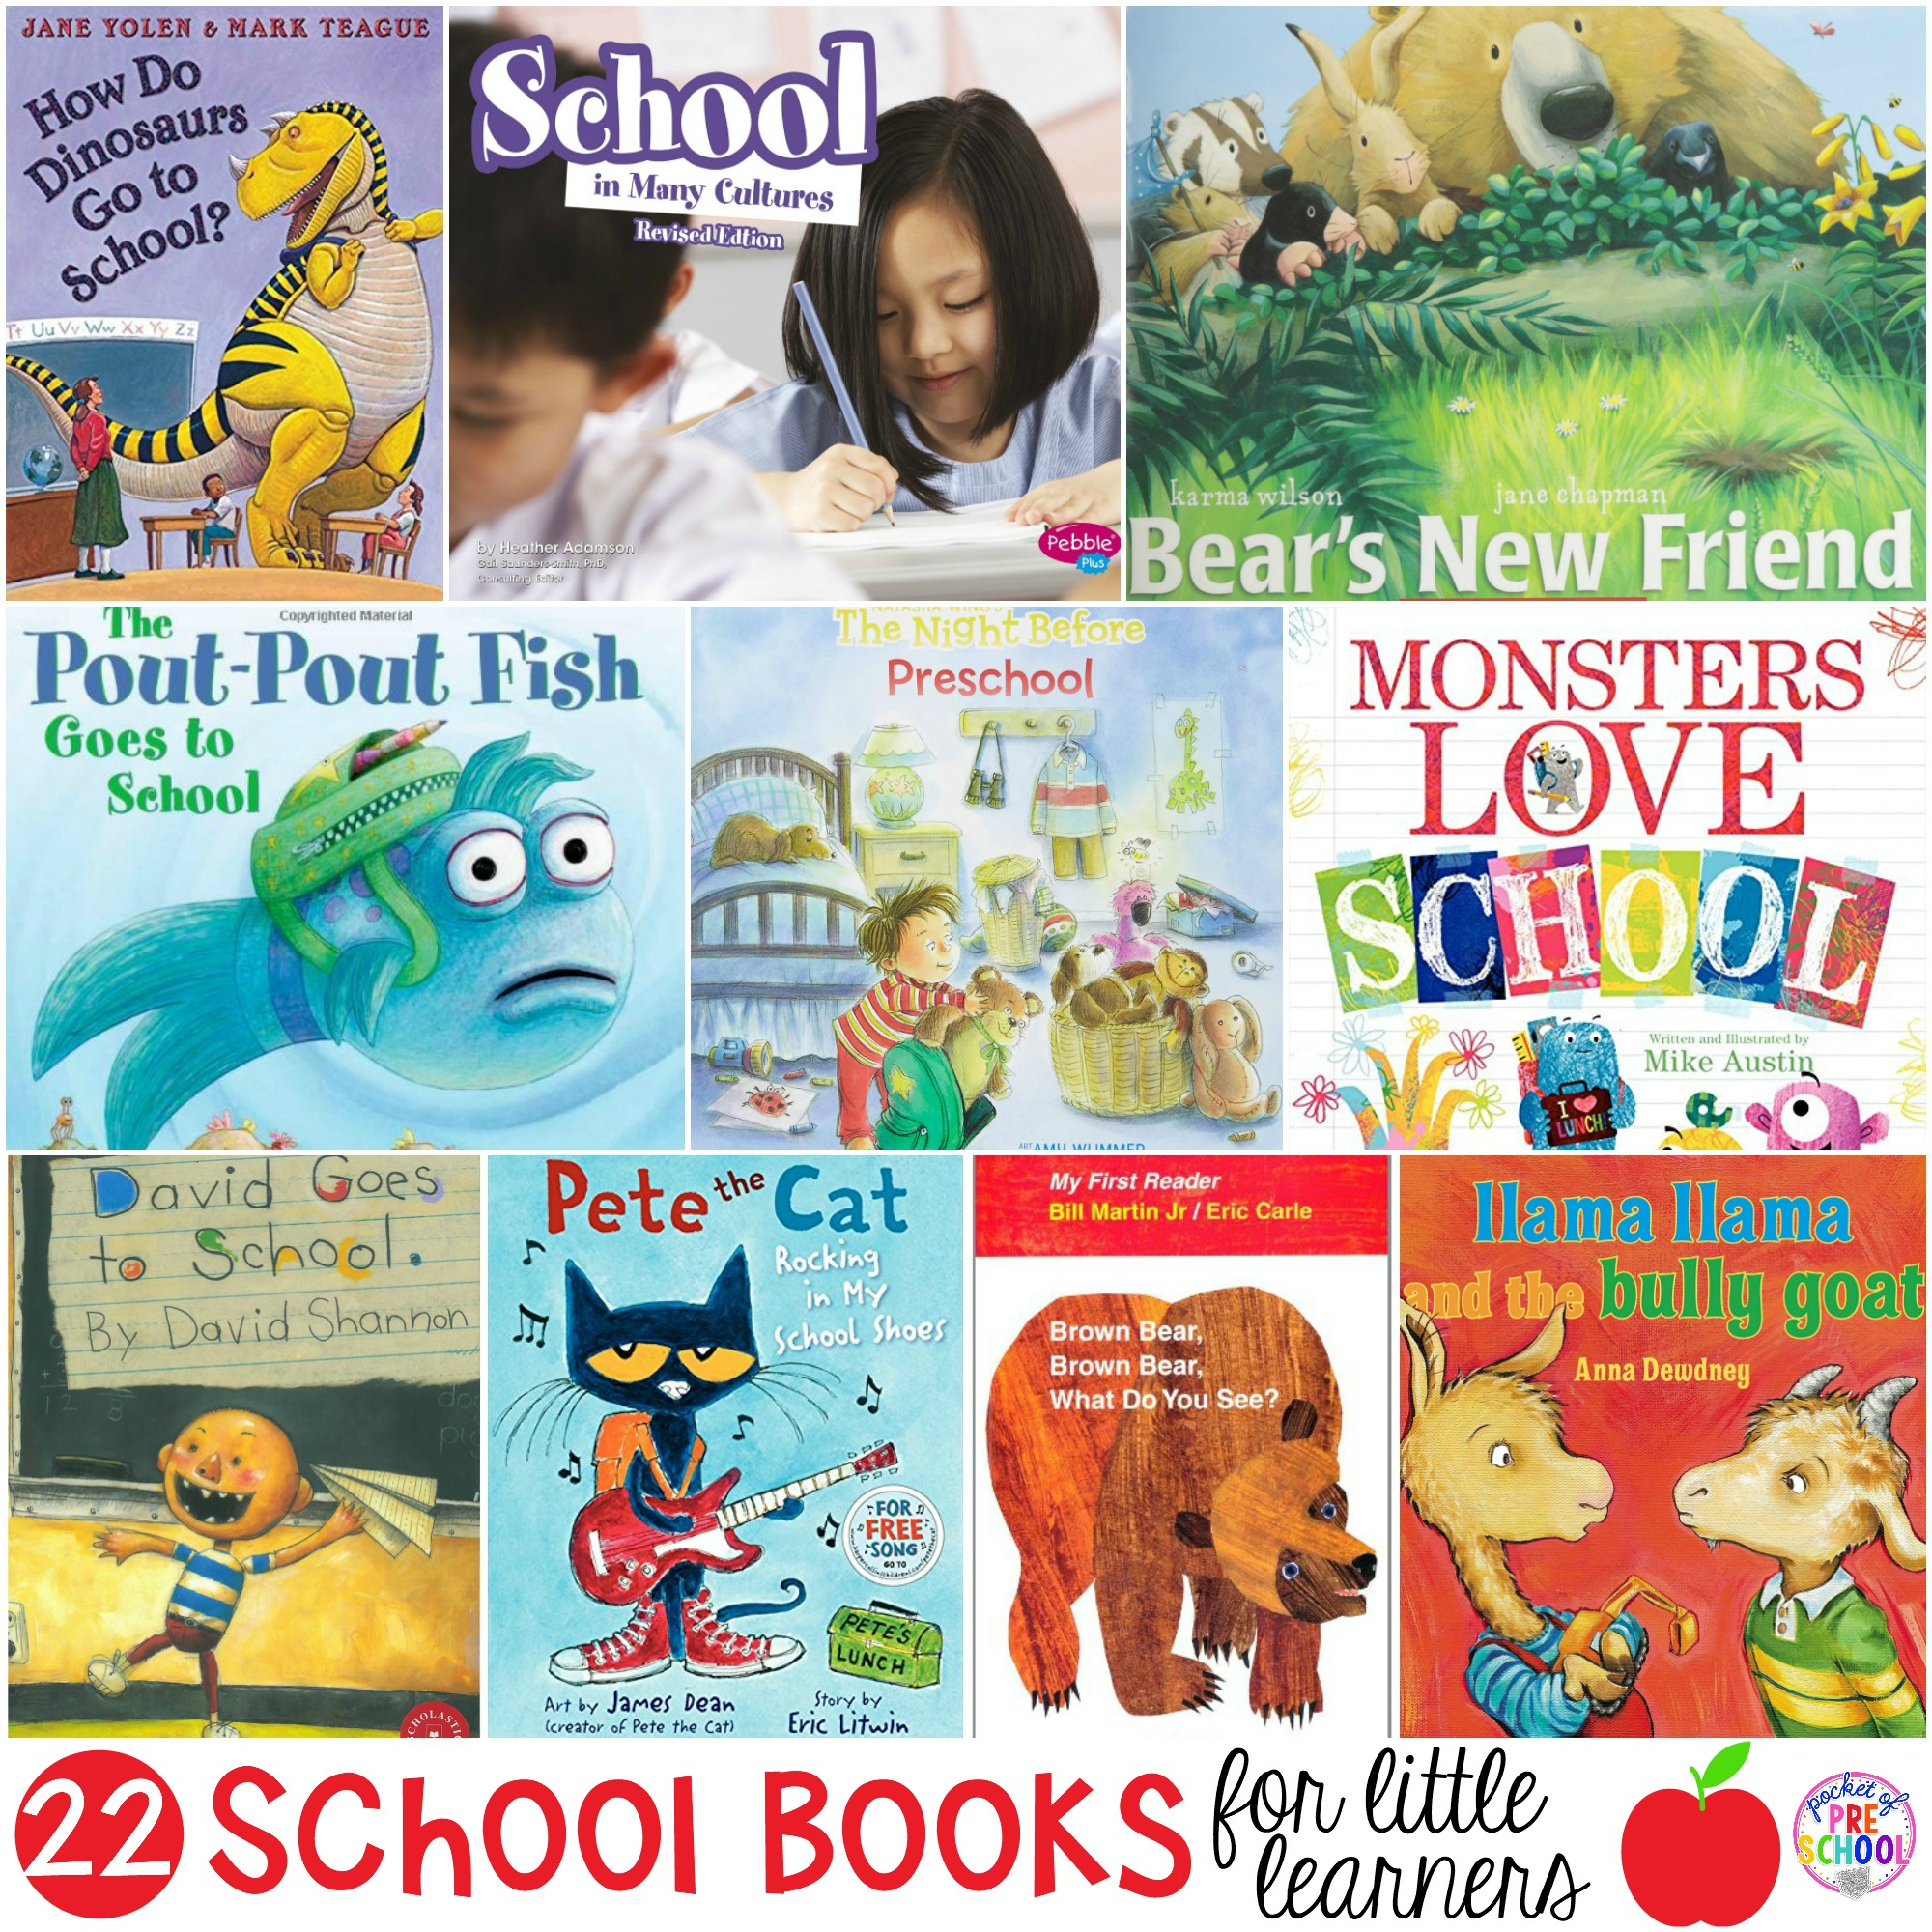 David goes to school and friends clipart clipart free stock School Books for Little Learners - Pocket of Preschool clipart free stock